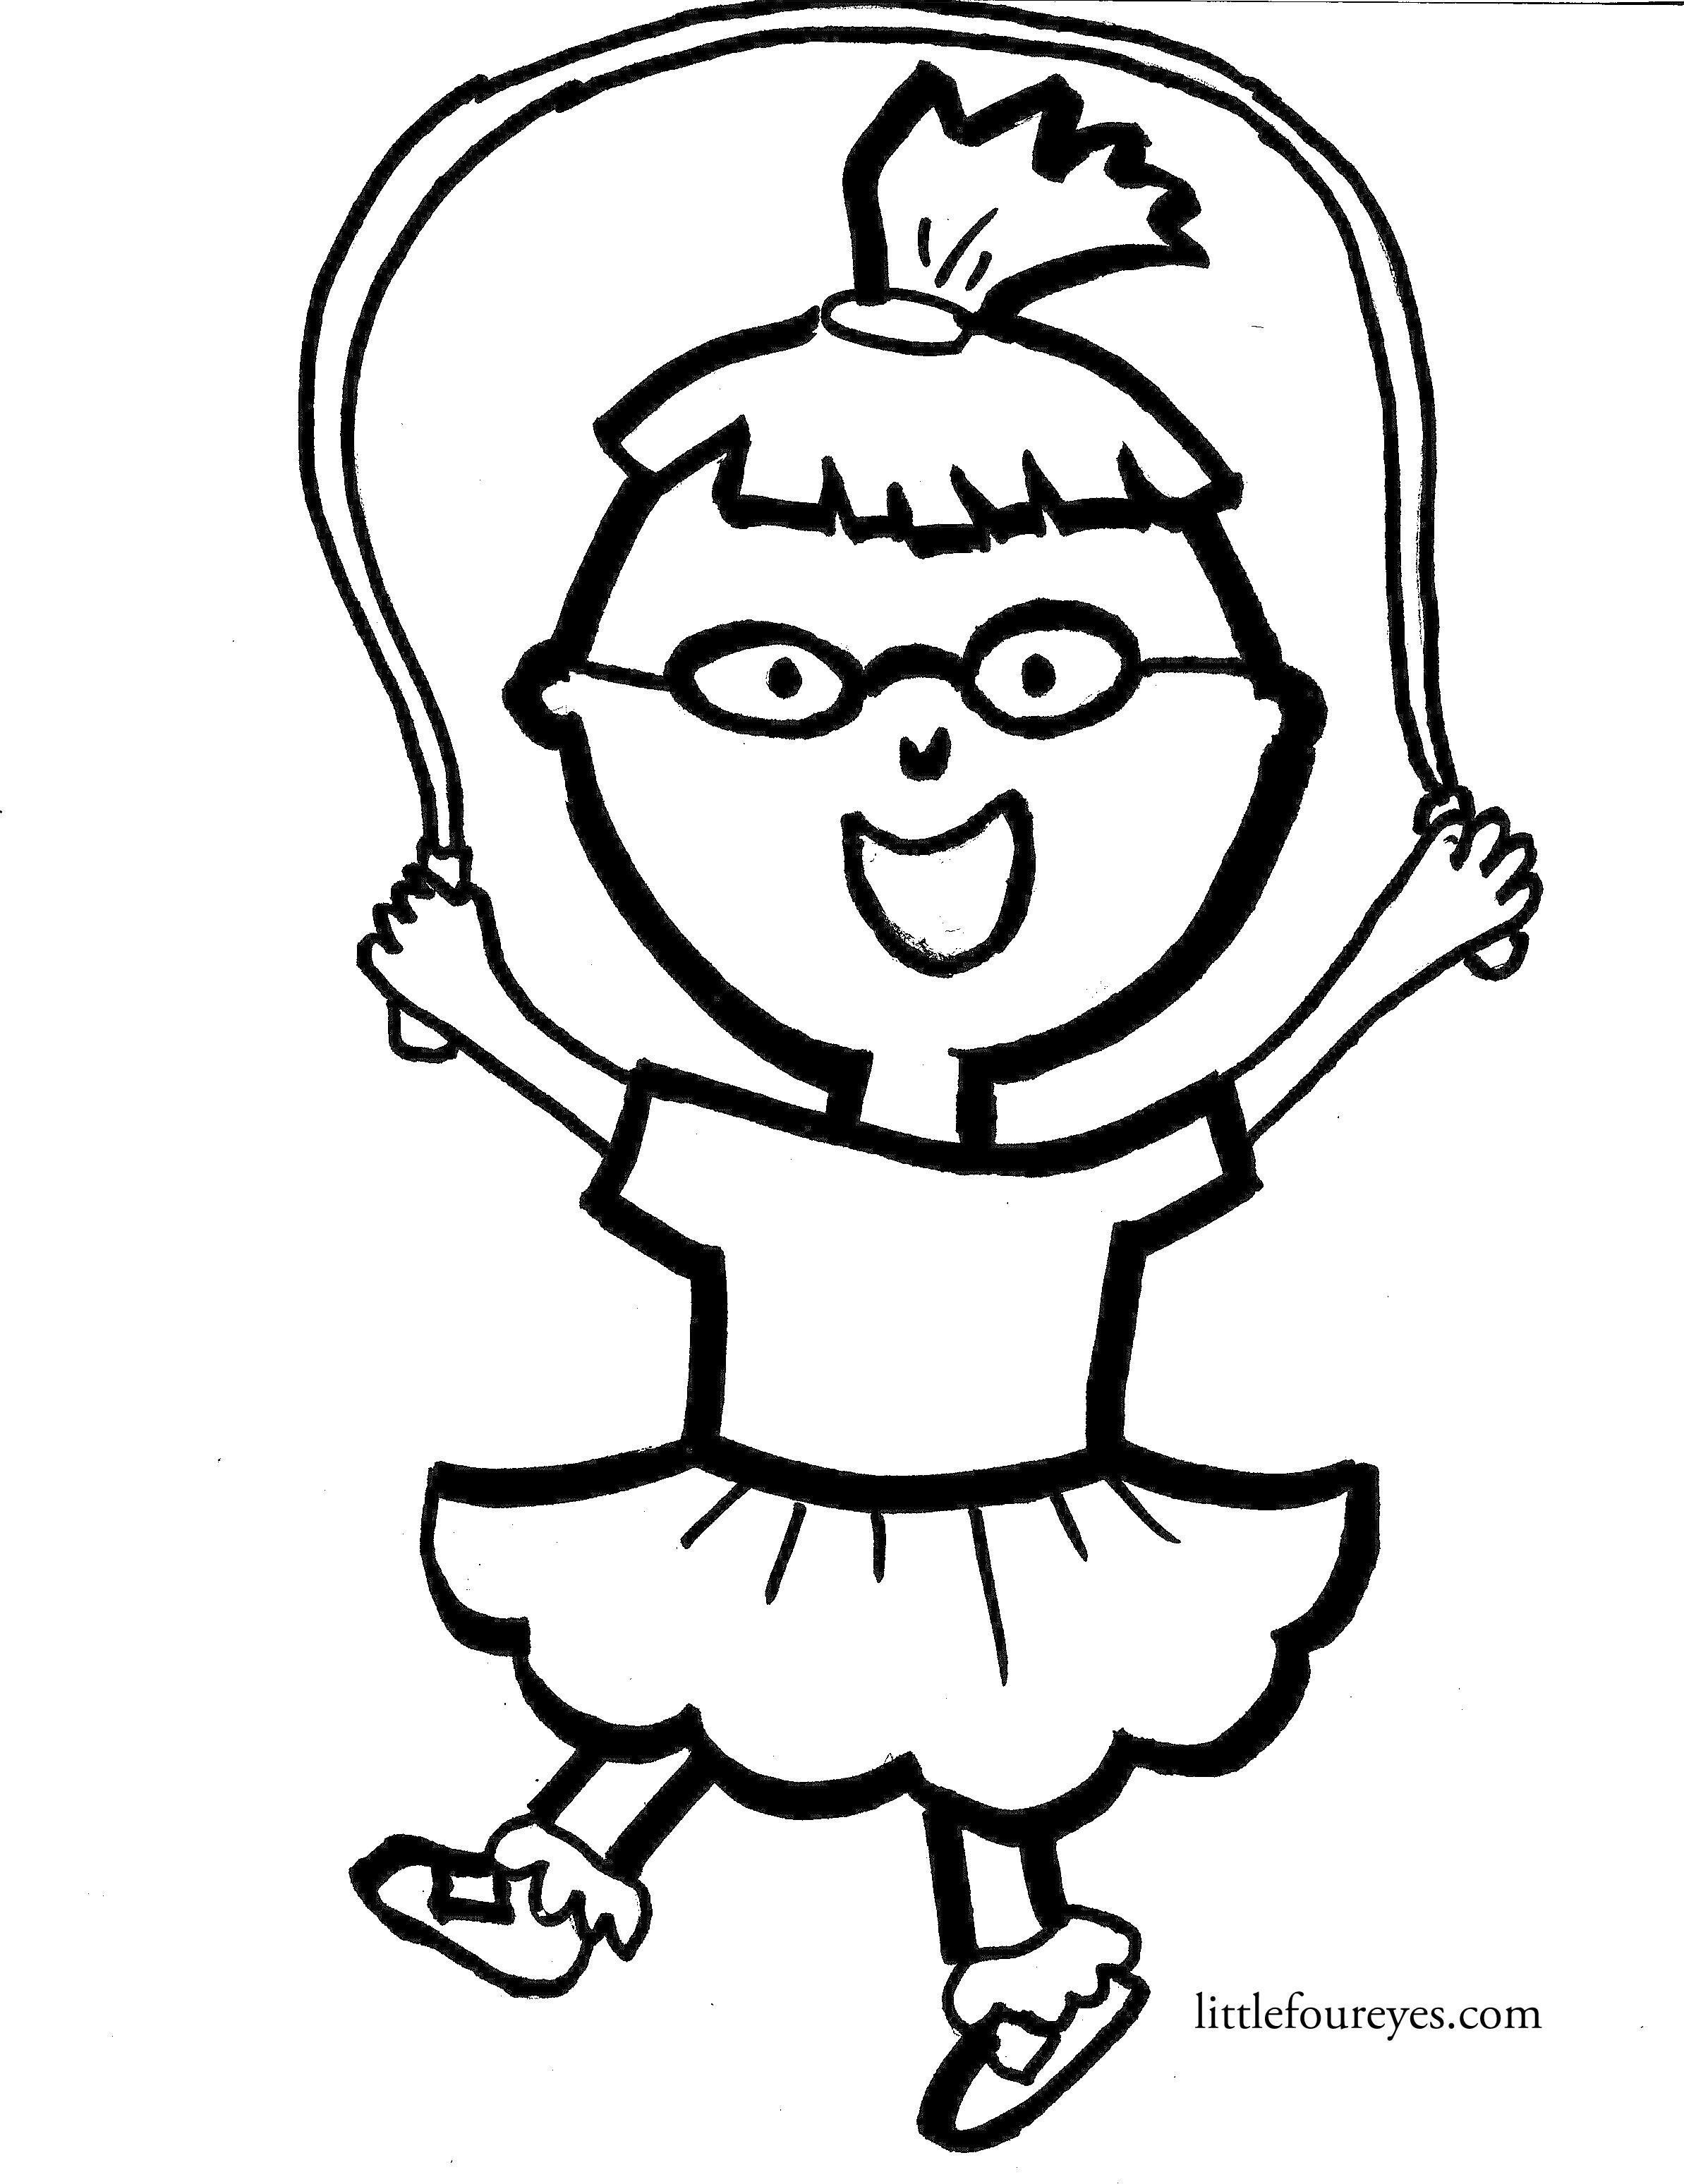 kids jumping rope coloring pages - photo#31